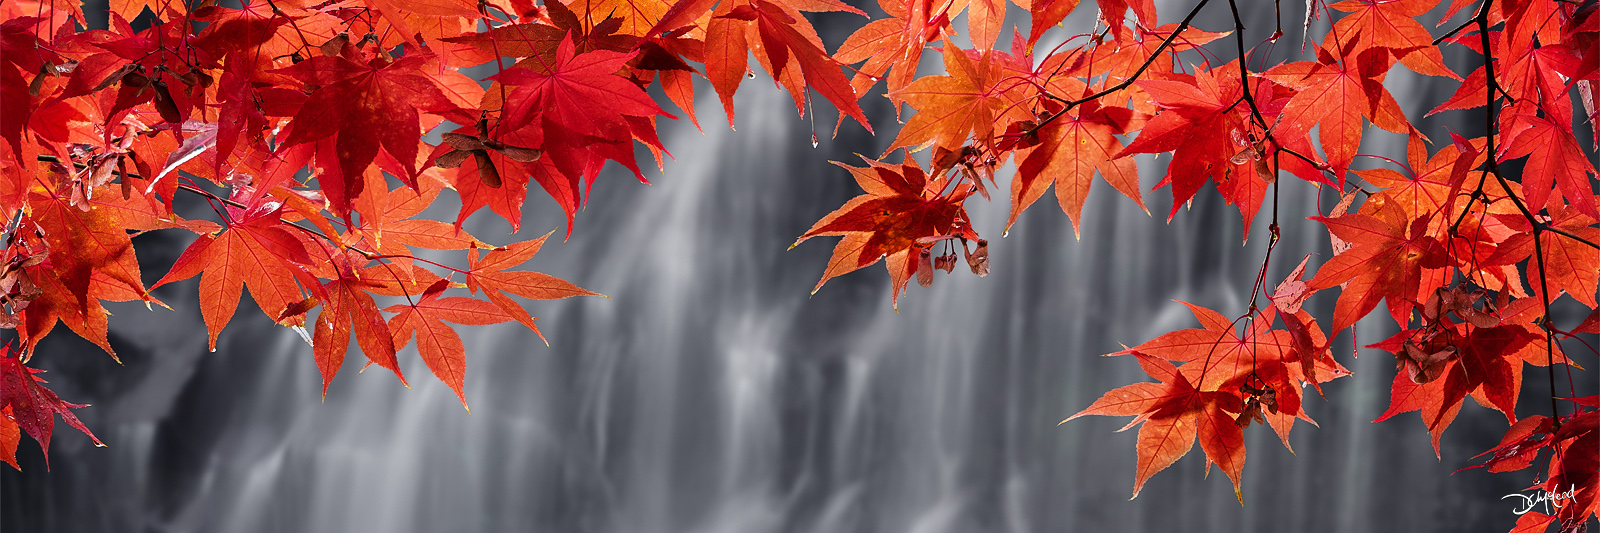 Panorama view of red maple leaves hanging in front of a gentle cascade on Vancouver Island, British Columbia.